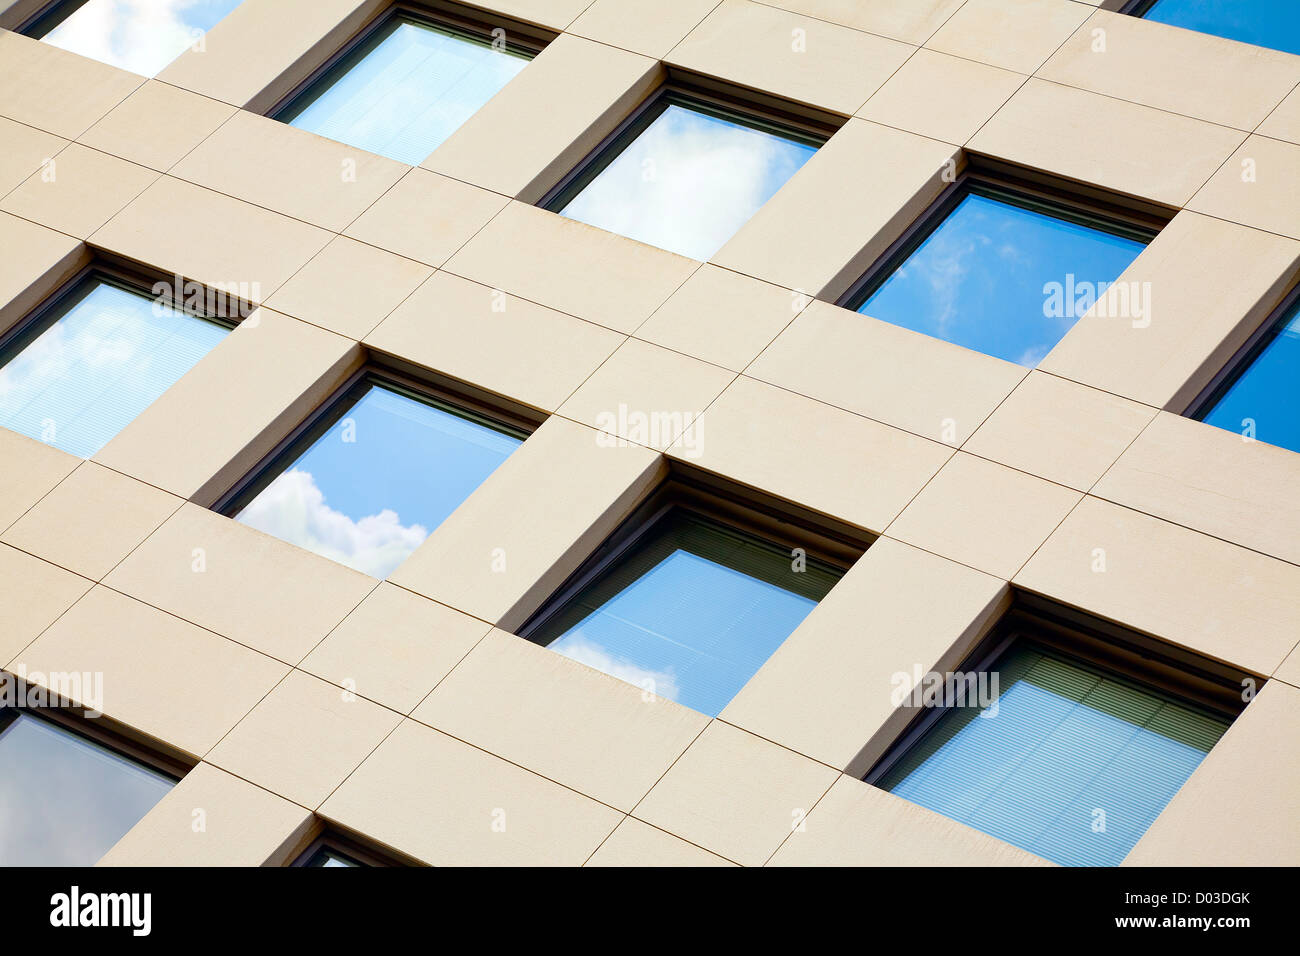 View of modern stone facade in city Luxembourg / Luxembourg, summer - Stock Image